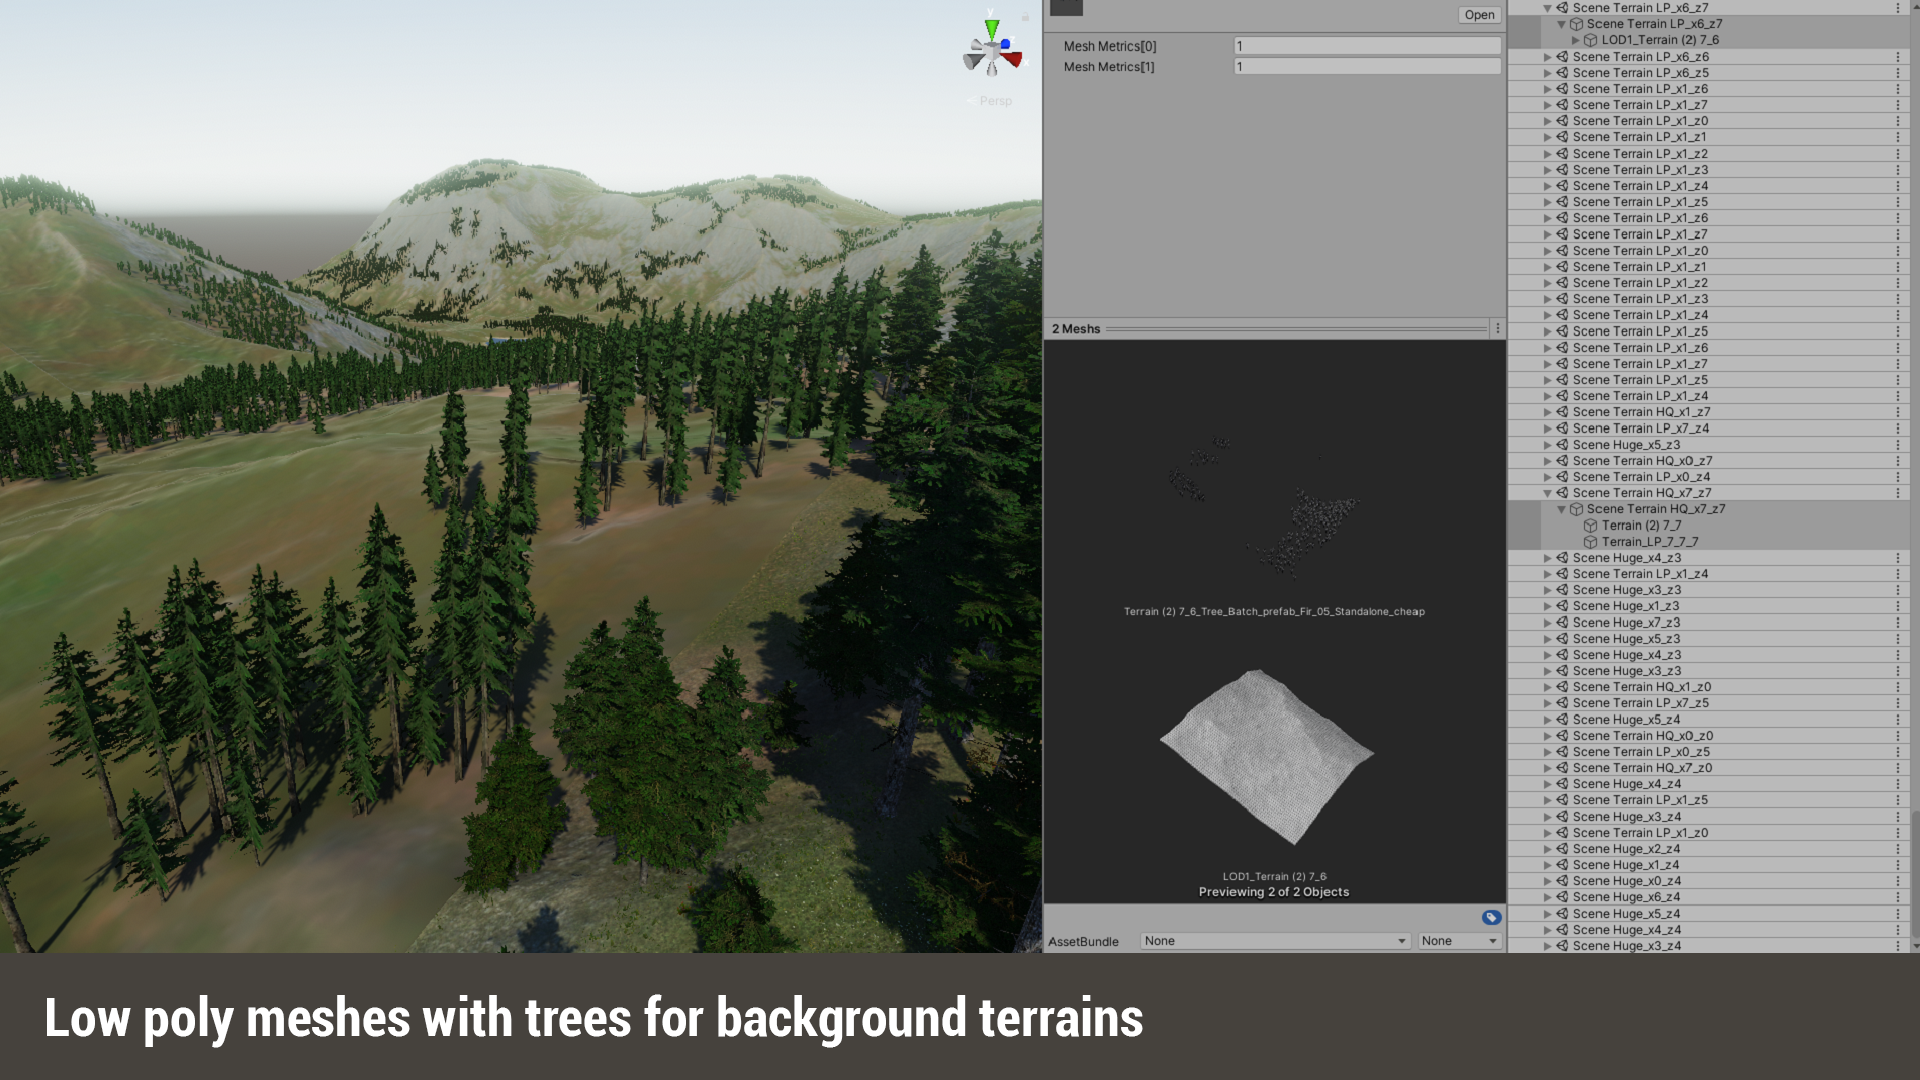 Low poly meshes with trees for background terrains (3).png